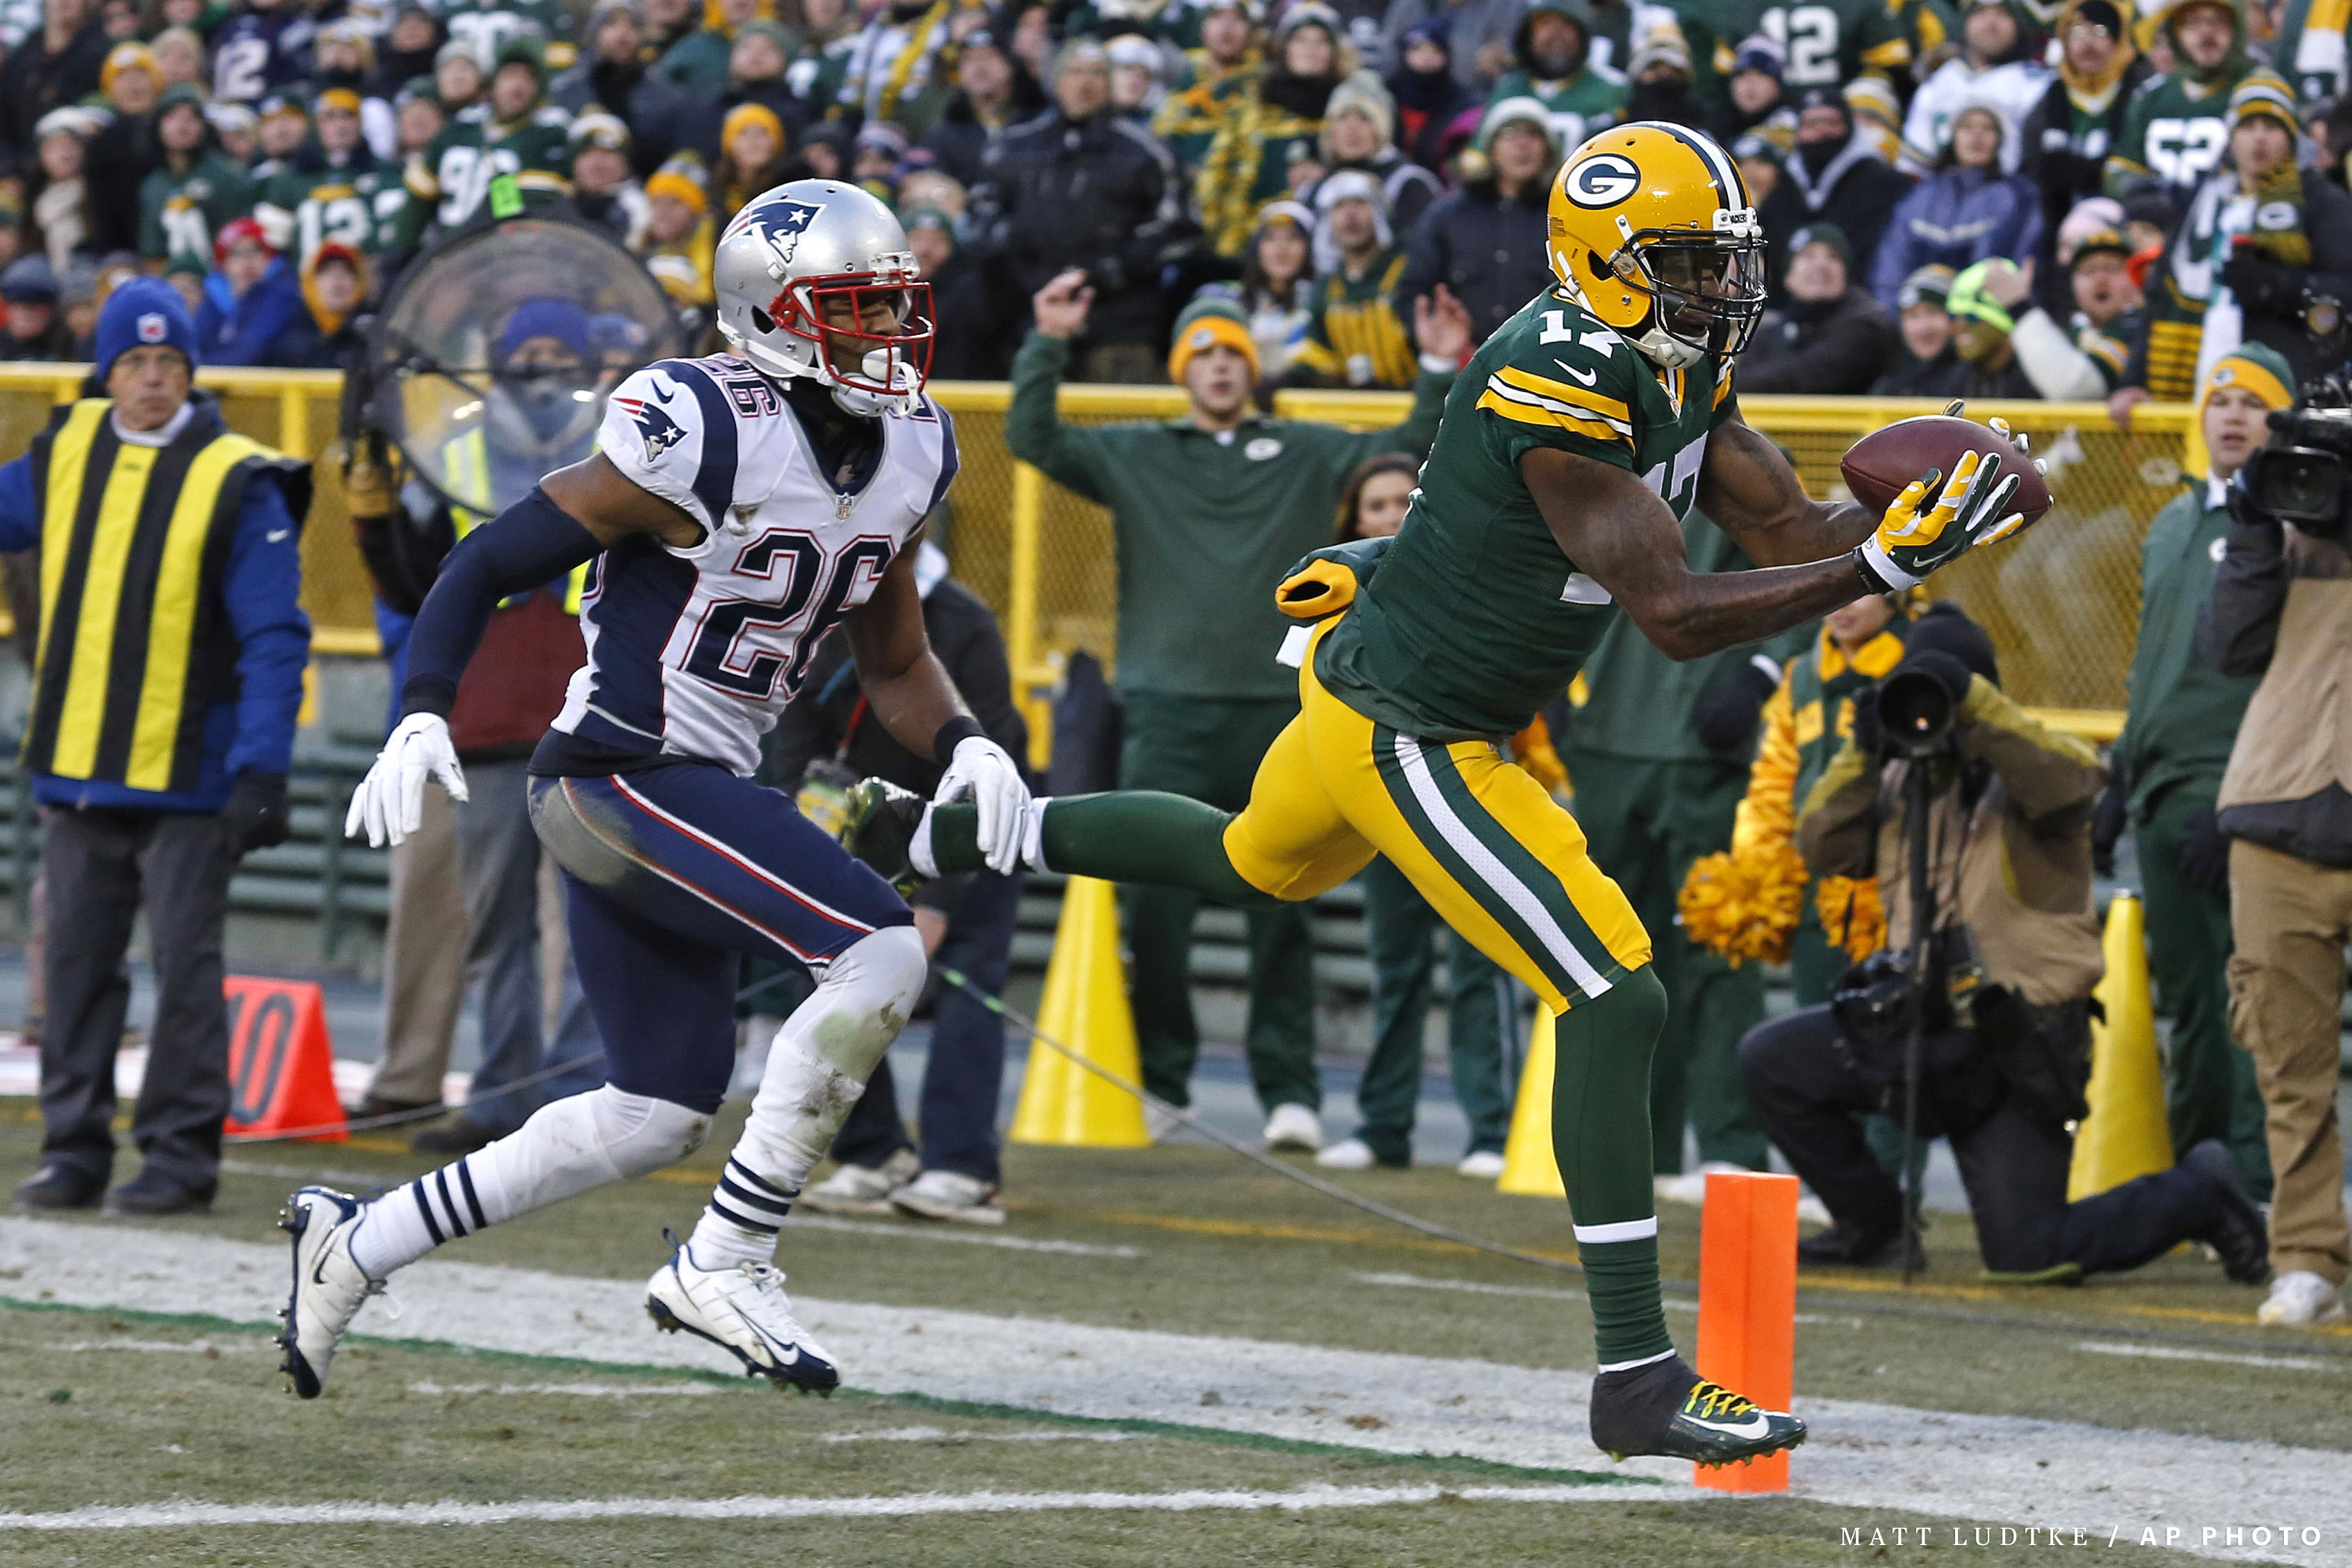 Green Bay Packers wide receiver Davante Adams tries to make a catch while being covered by New England Patriots cornerback Logan Ryan during an NFL football game Sunday Nov. 30, 2014, in Green Bay, Wis. (AP Photo/Matt Ludtke)